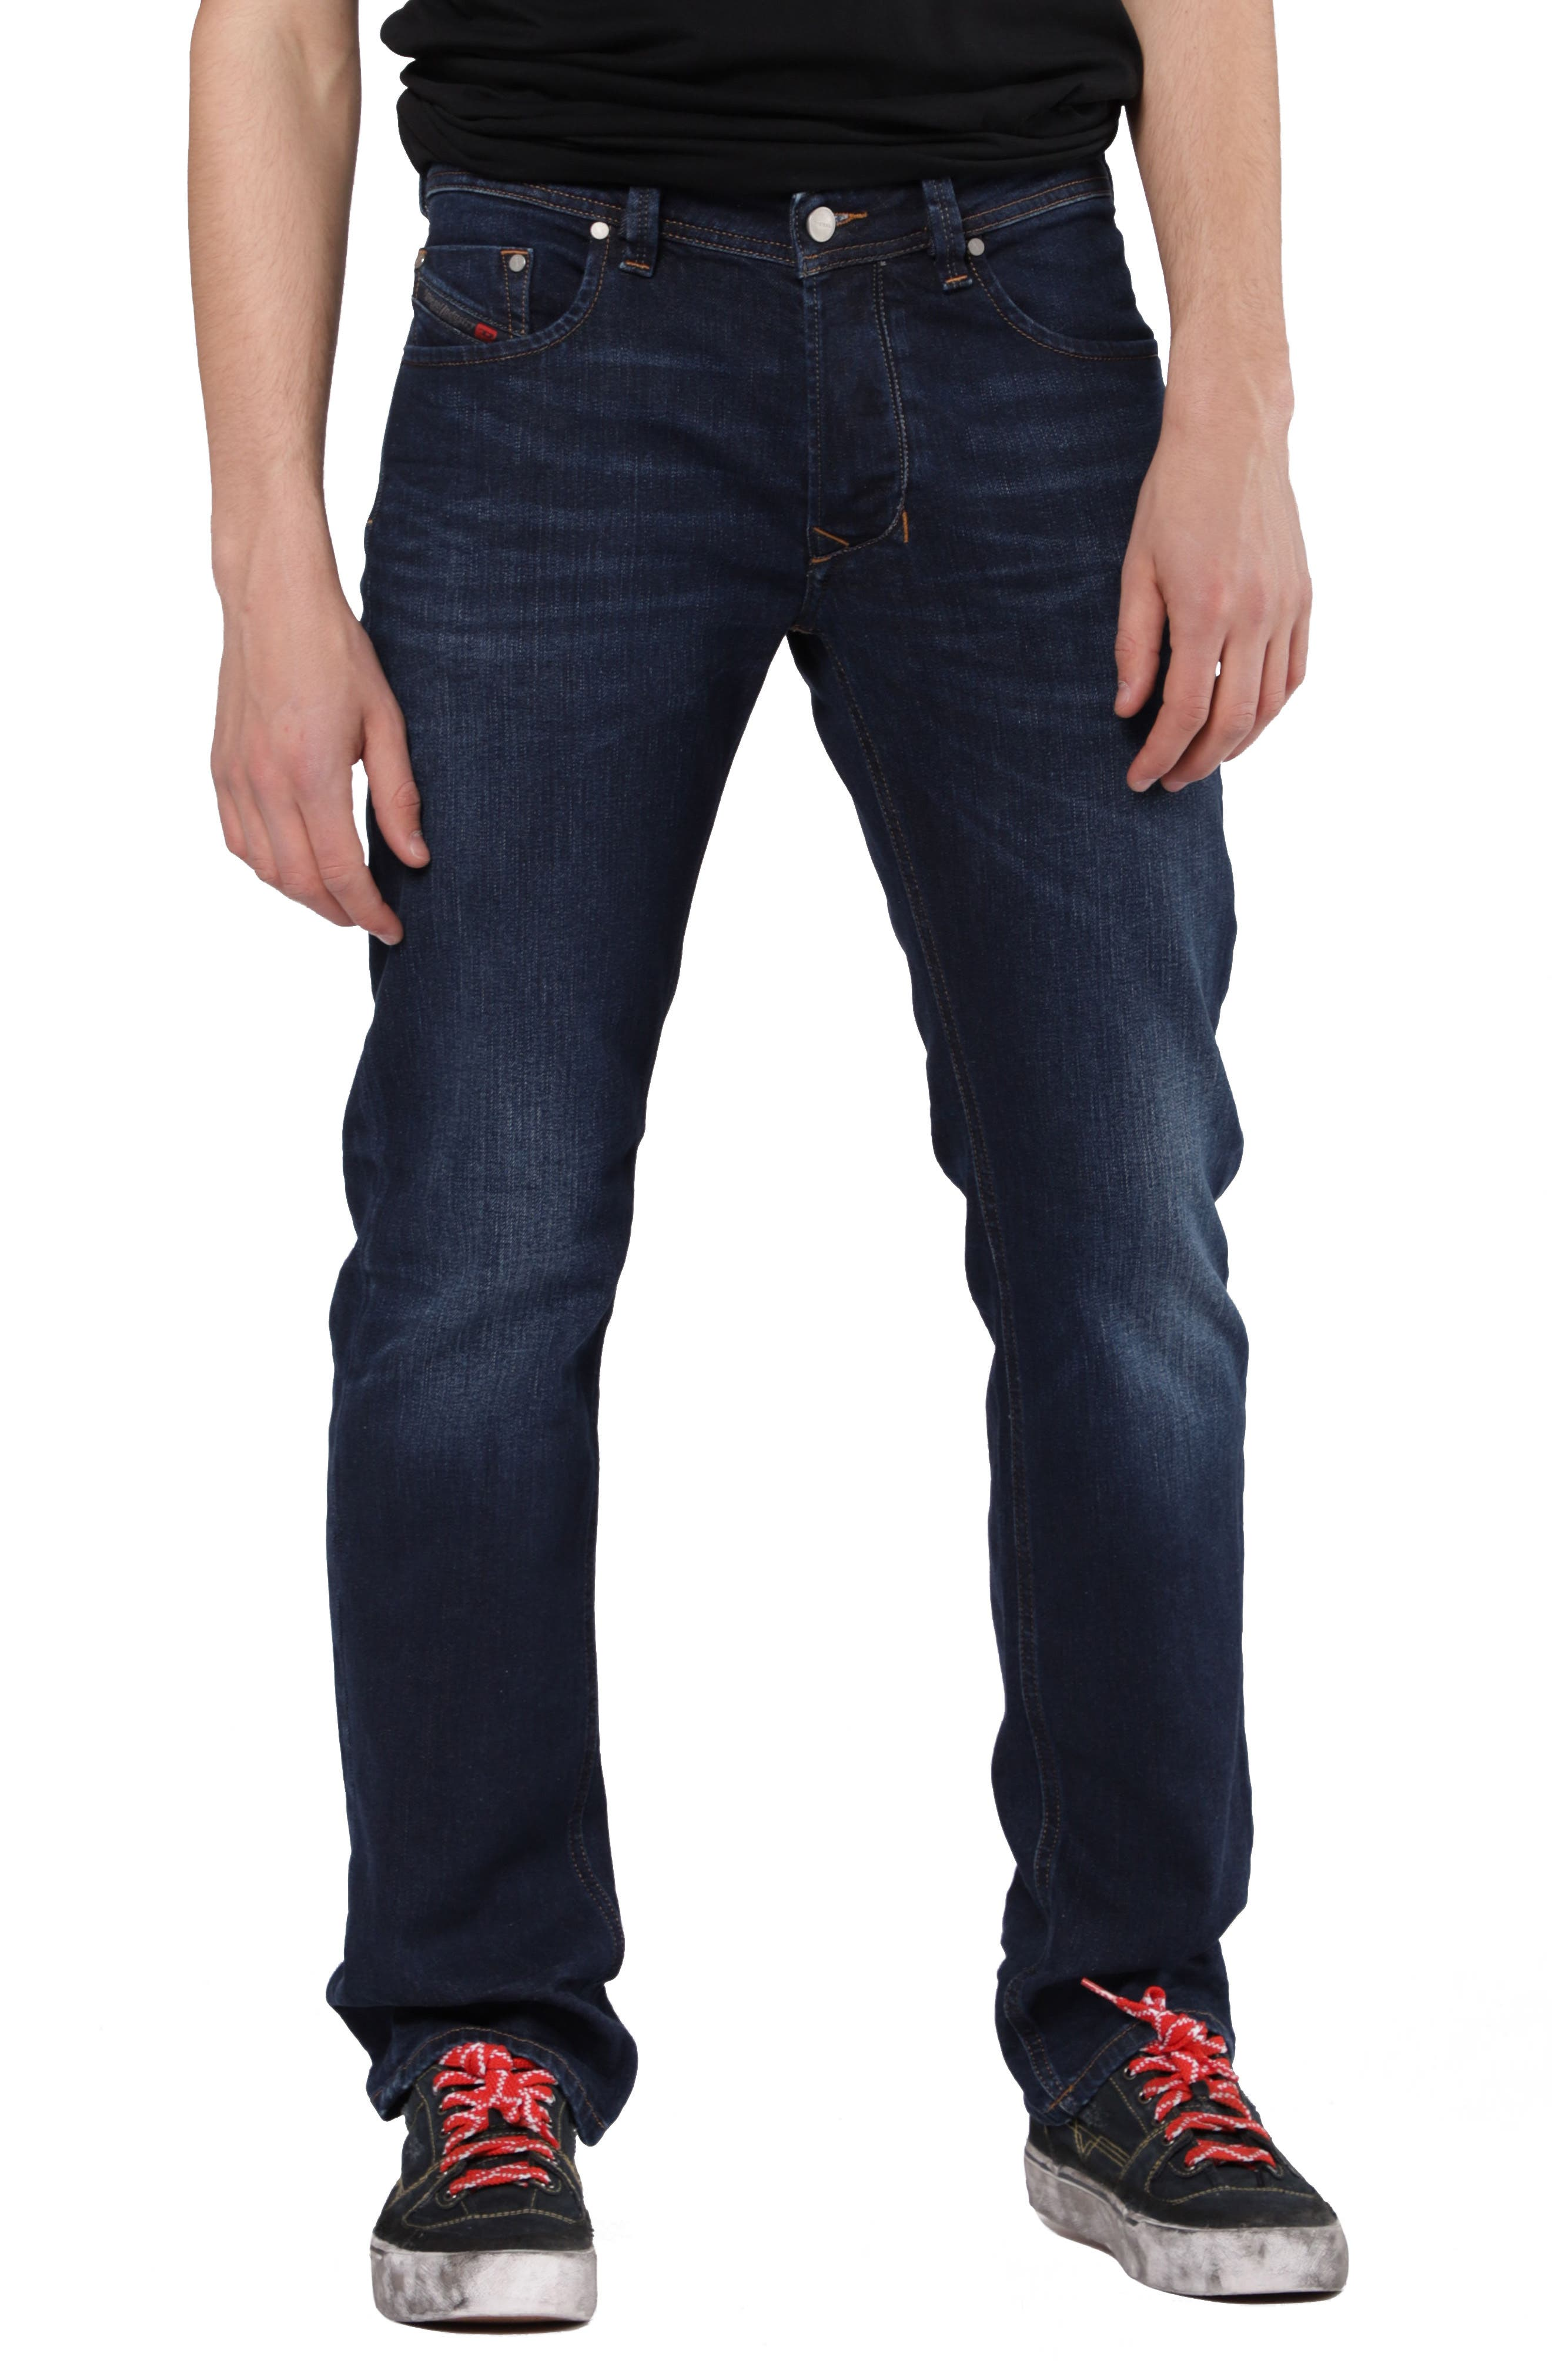 Larkee Relaxed Fit Jeans,                             Main thumbnail 1, color,                             084VG